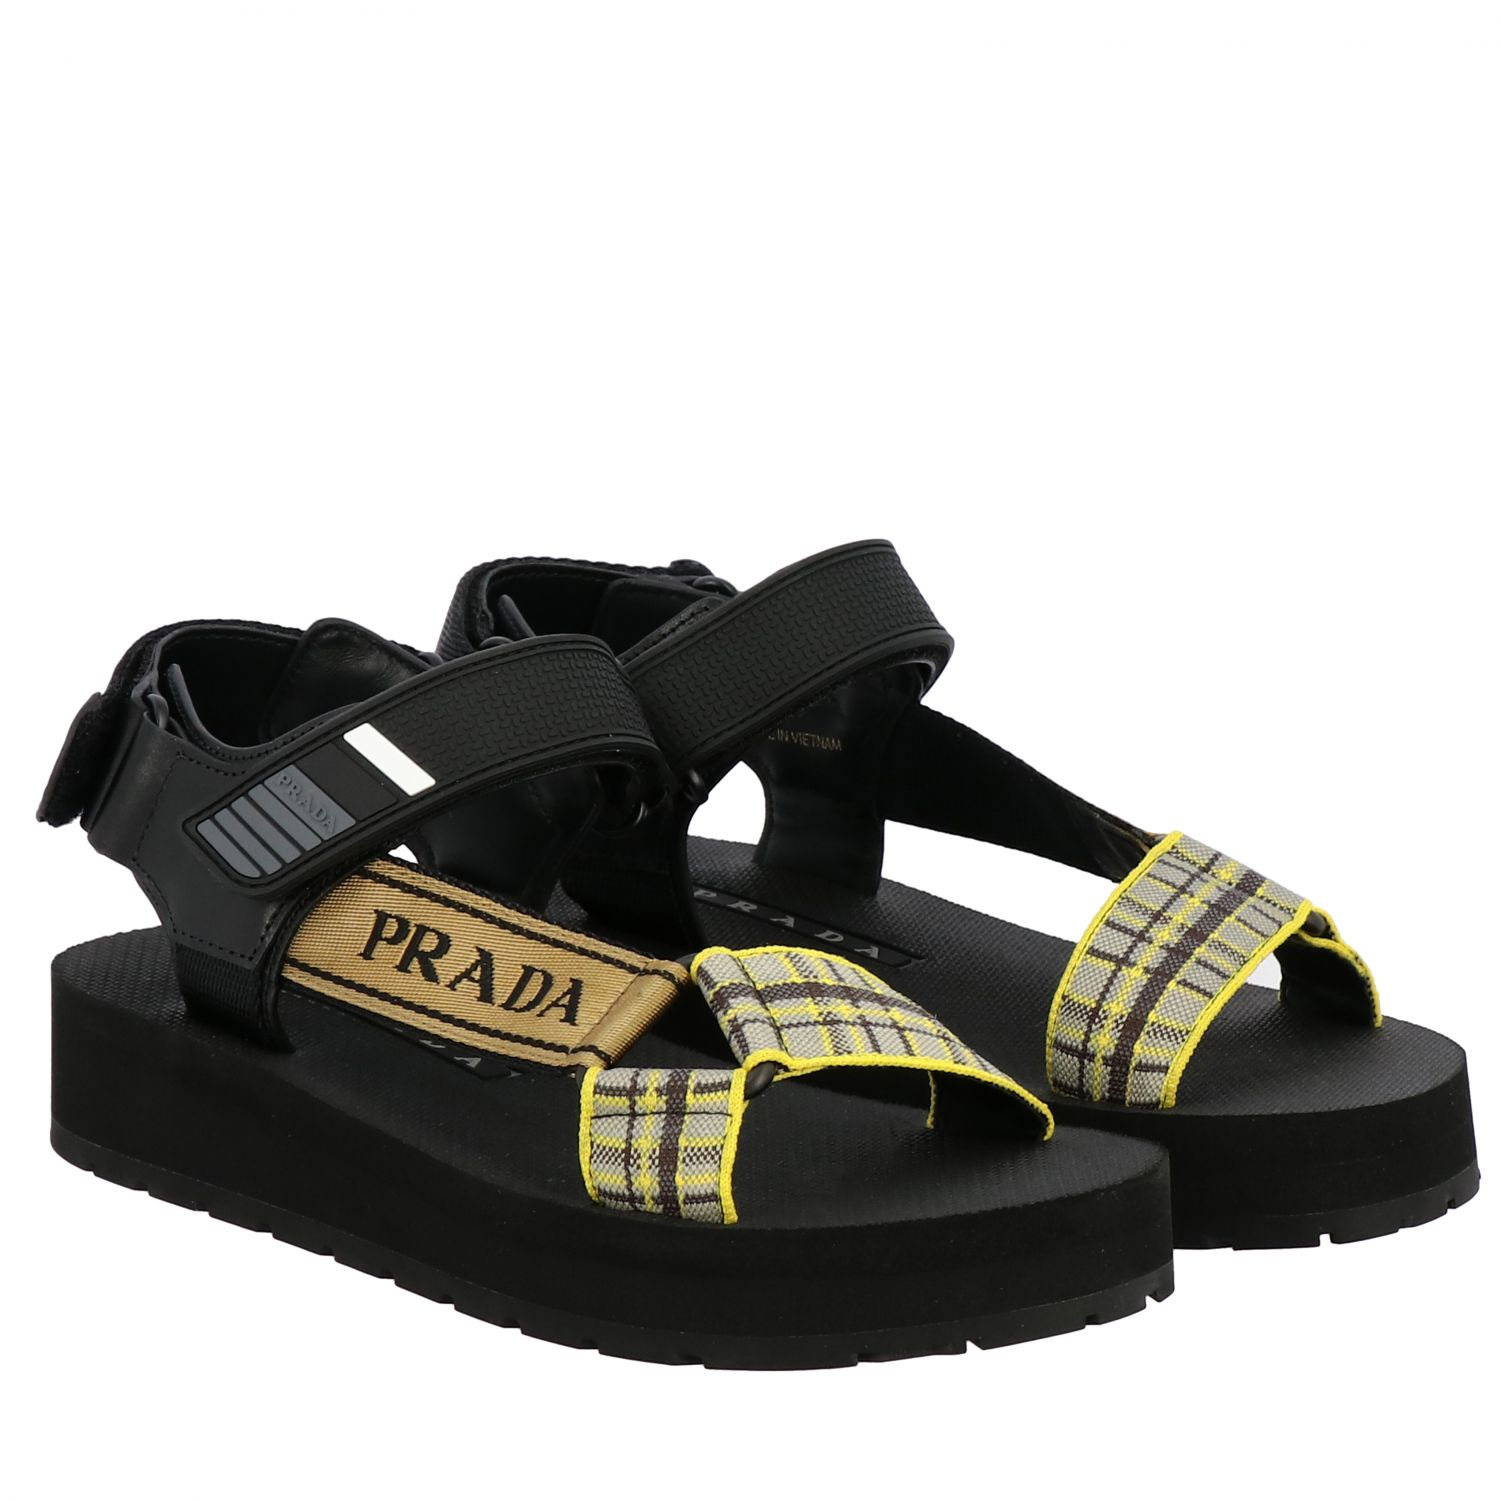 Shoes women Prada black 2